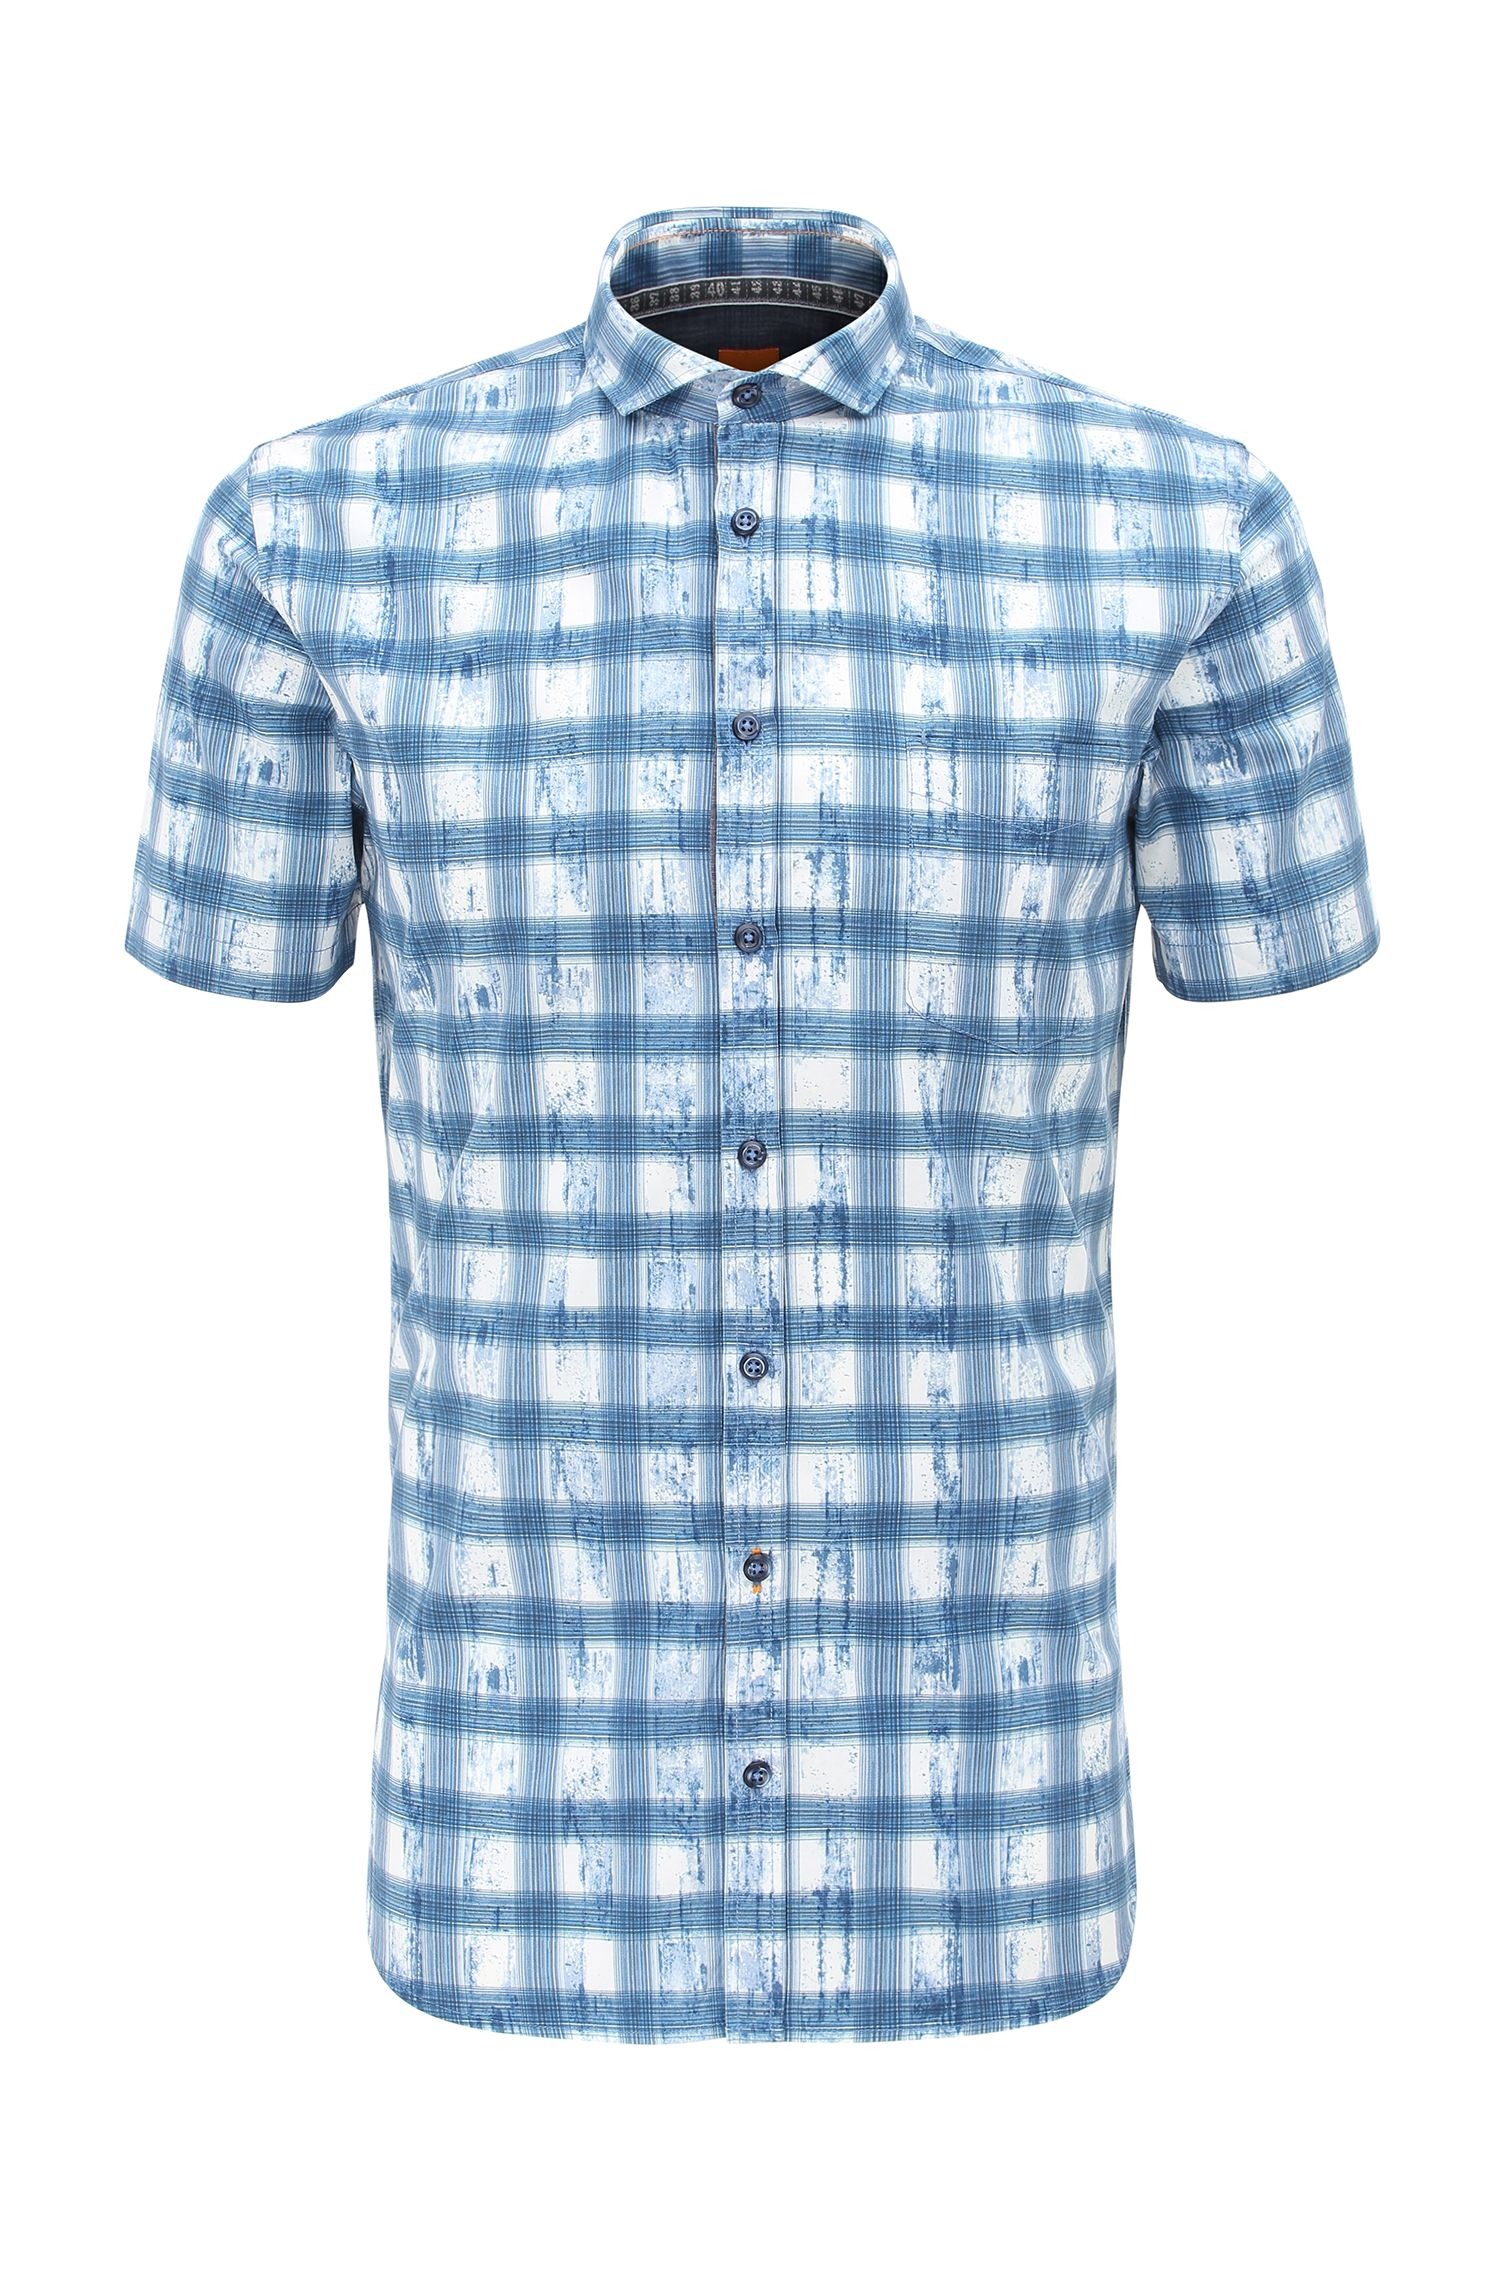 'Catitude Short' | Slim Fit, Cotton Short Sleeve Sport Shirt